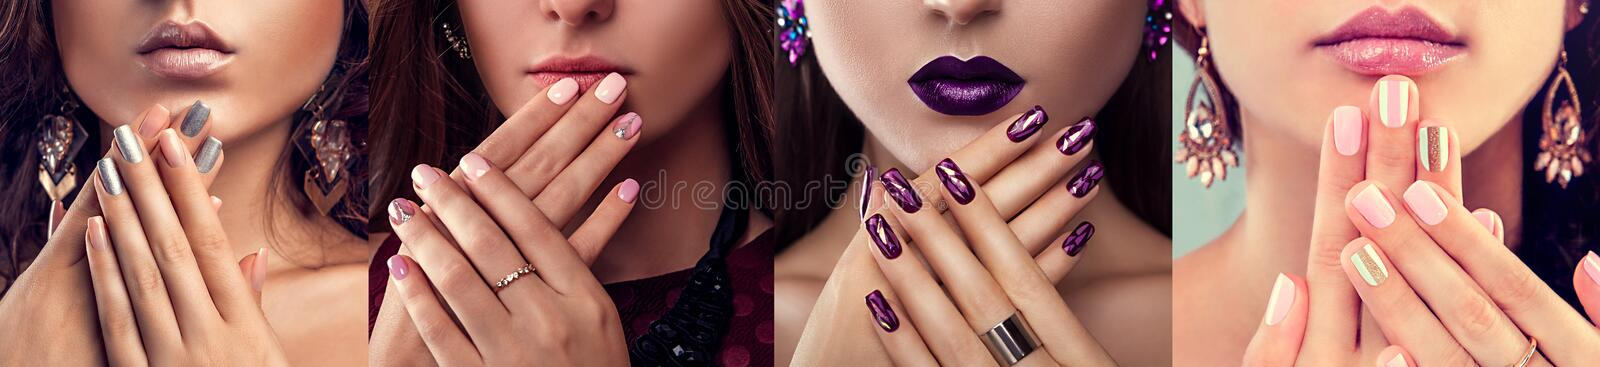 Beauty fashion model with different make-up and nail art design wearing jewelry. Set of manicure. Four stylish looks. Beauty fashion model with different make-up stock photography